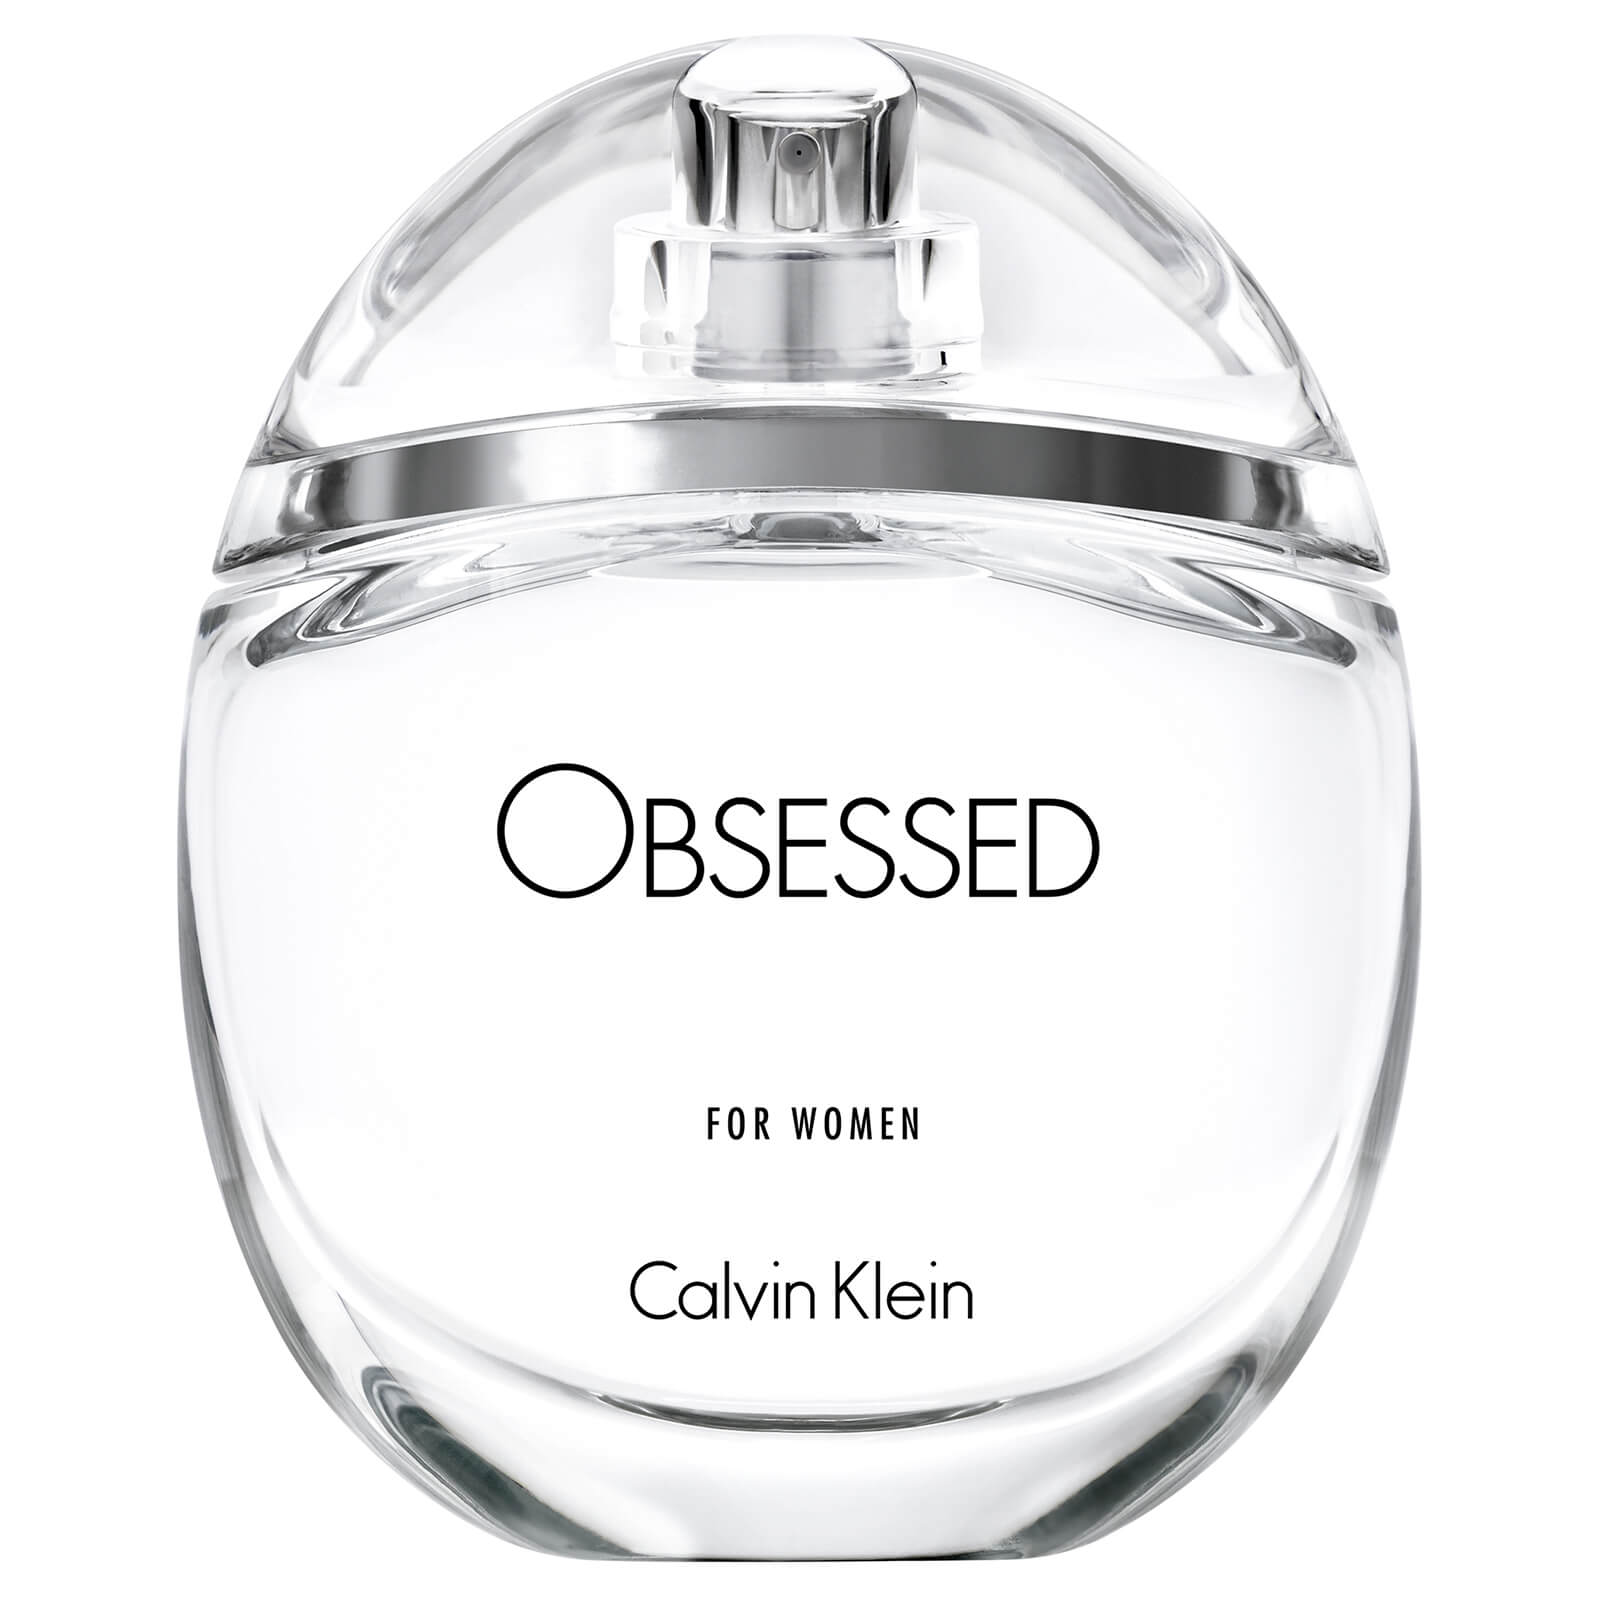 Calvin Klein Obsessed For Women Eau De Parfum 100ml Beautyexpert